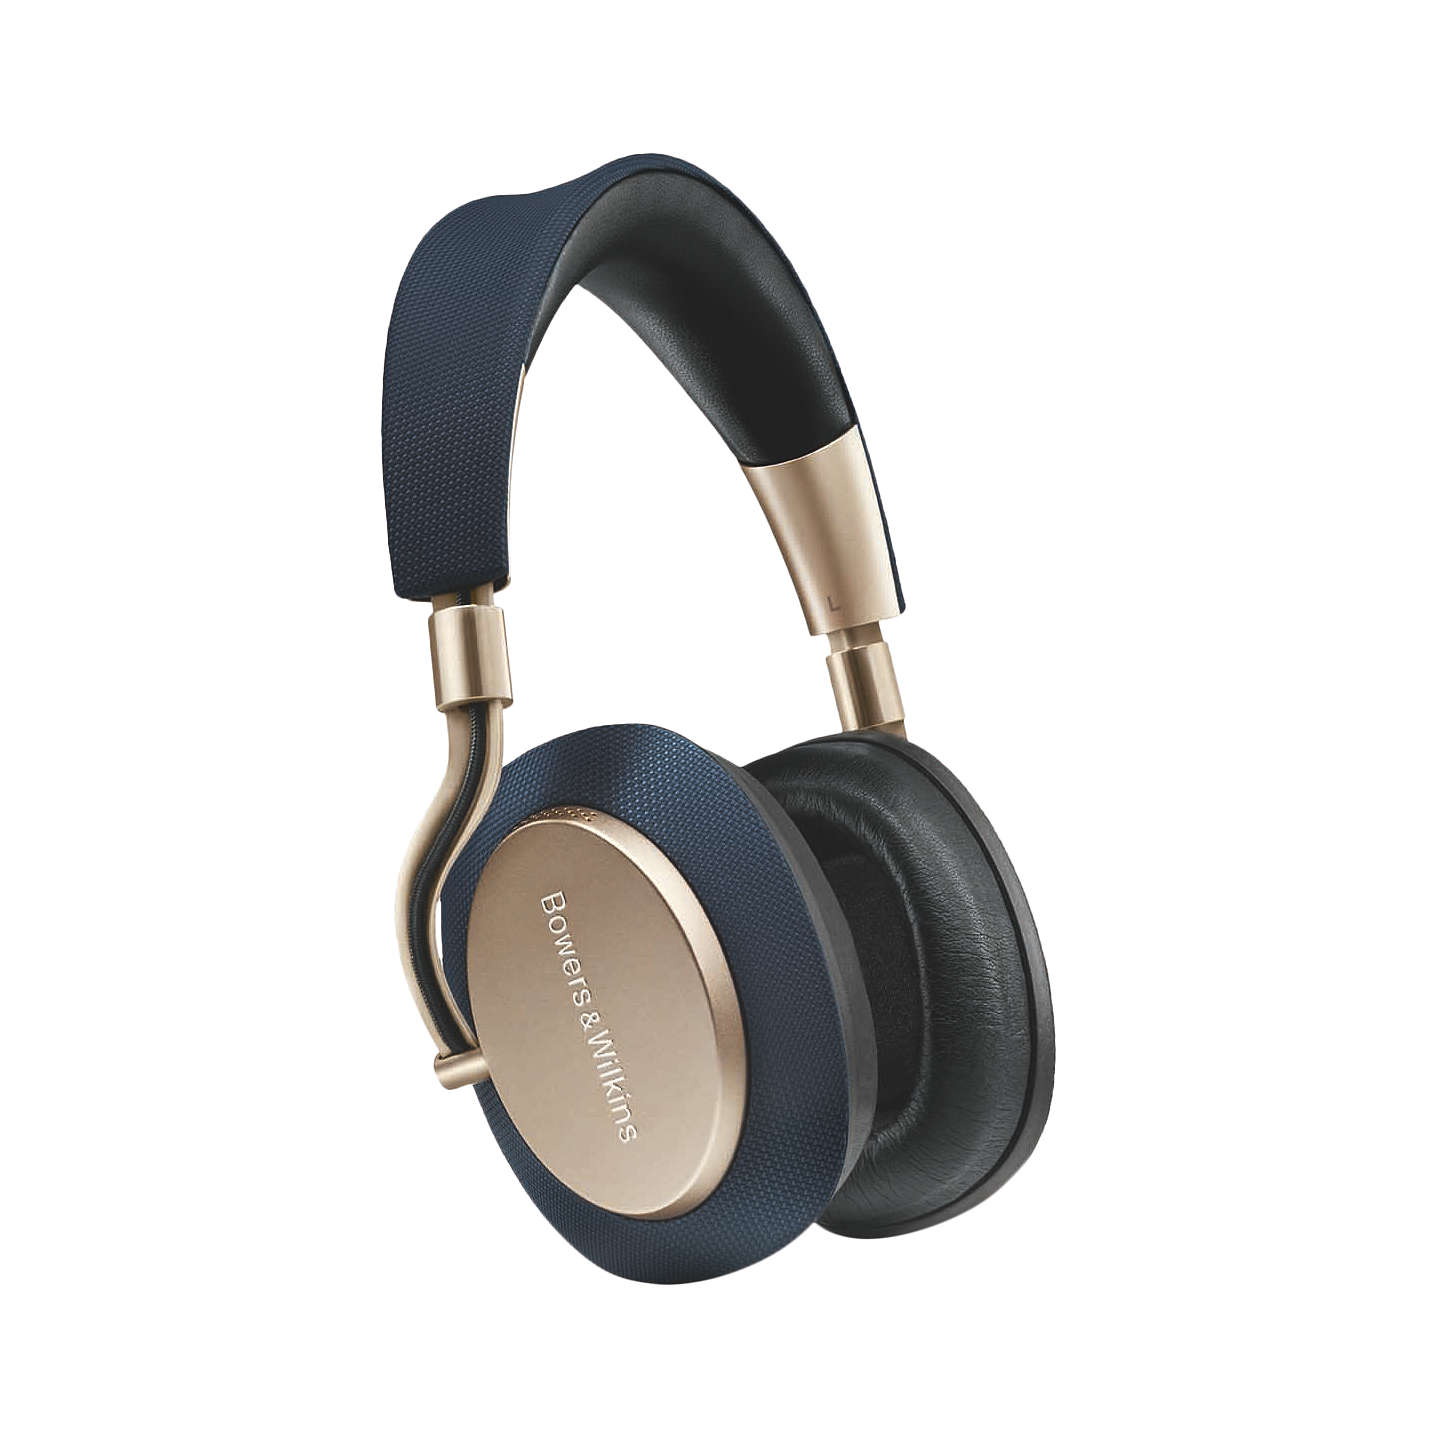 Bowers & Wilkins PX Headphones - Top 5 Picks For Your Hand luggage